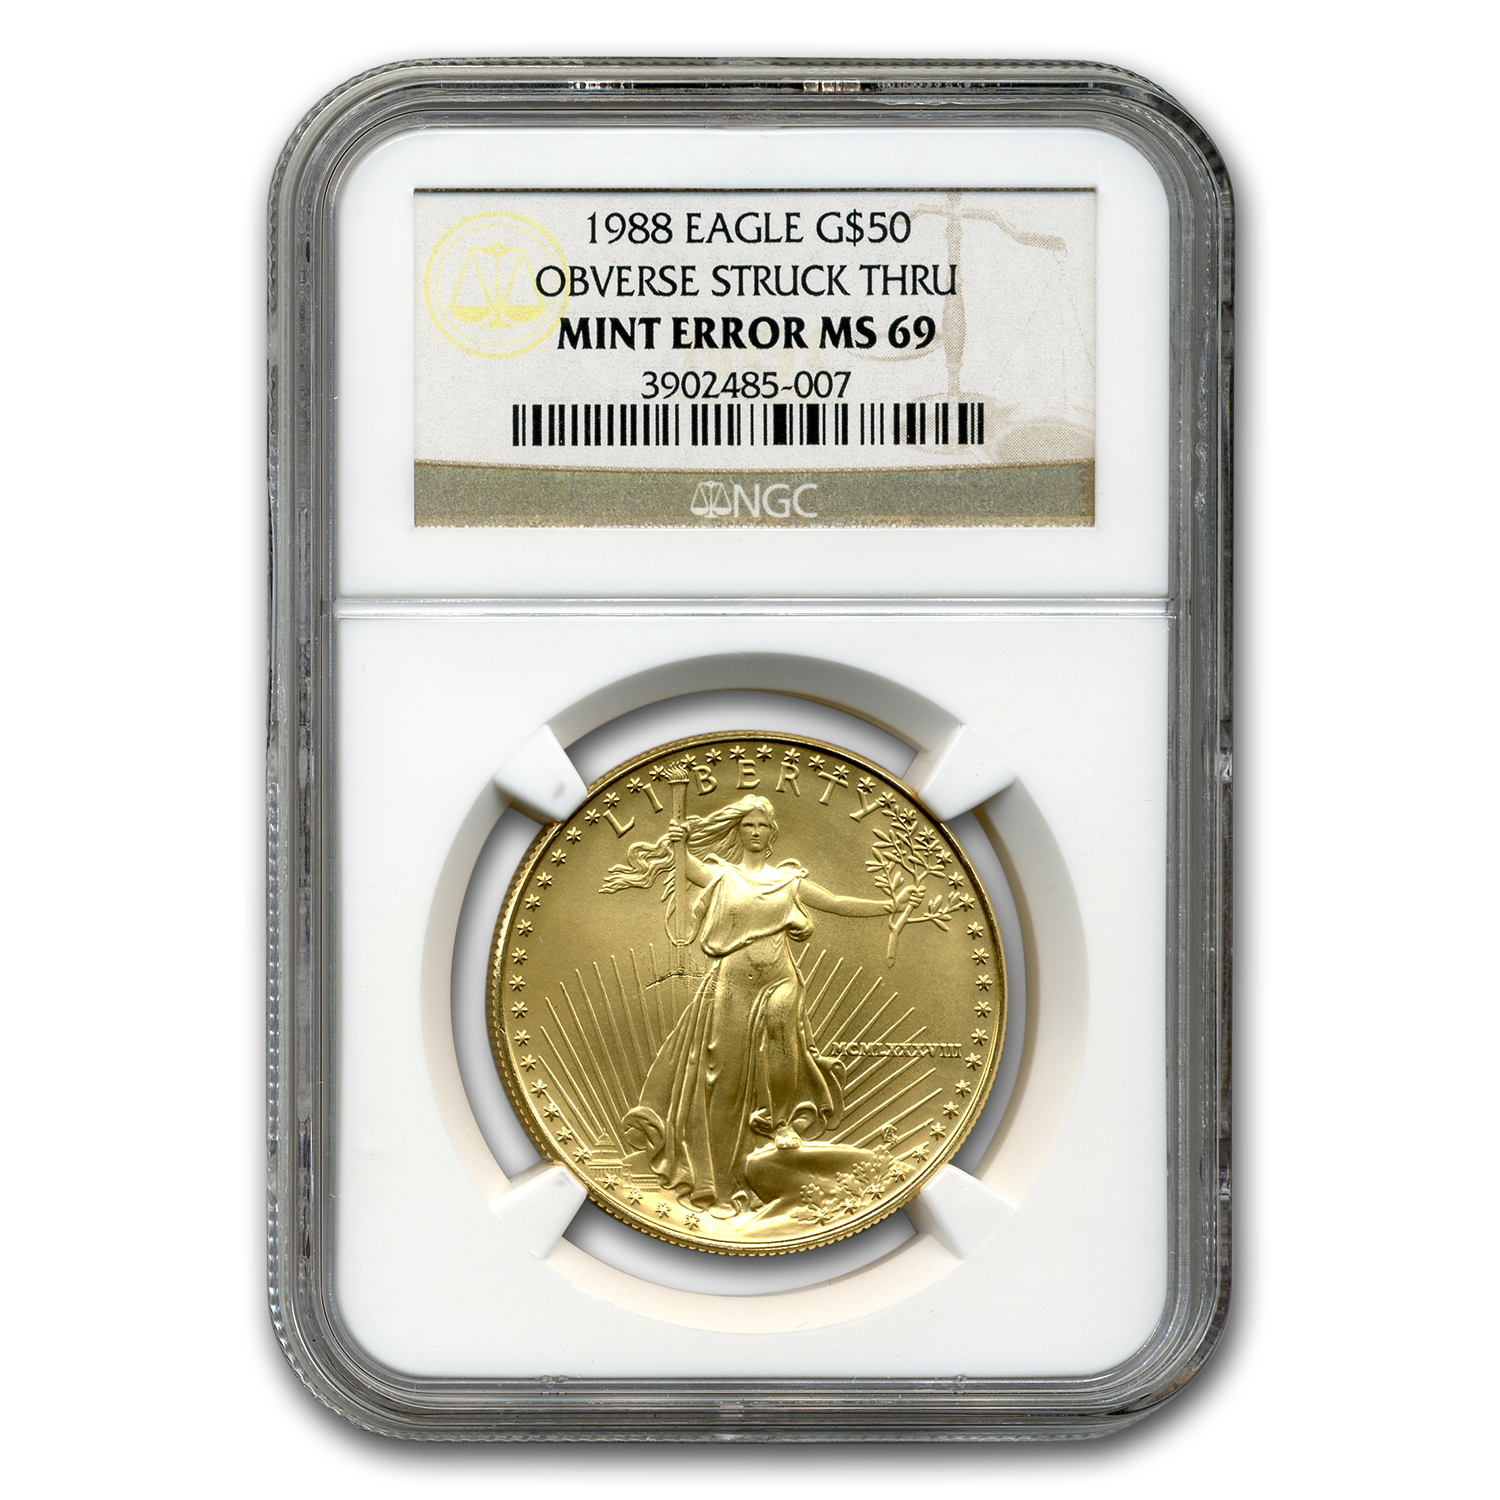 1988 1 oz Gold American Eagle MS-69 NGC (Obv Mint Error)